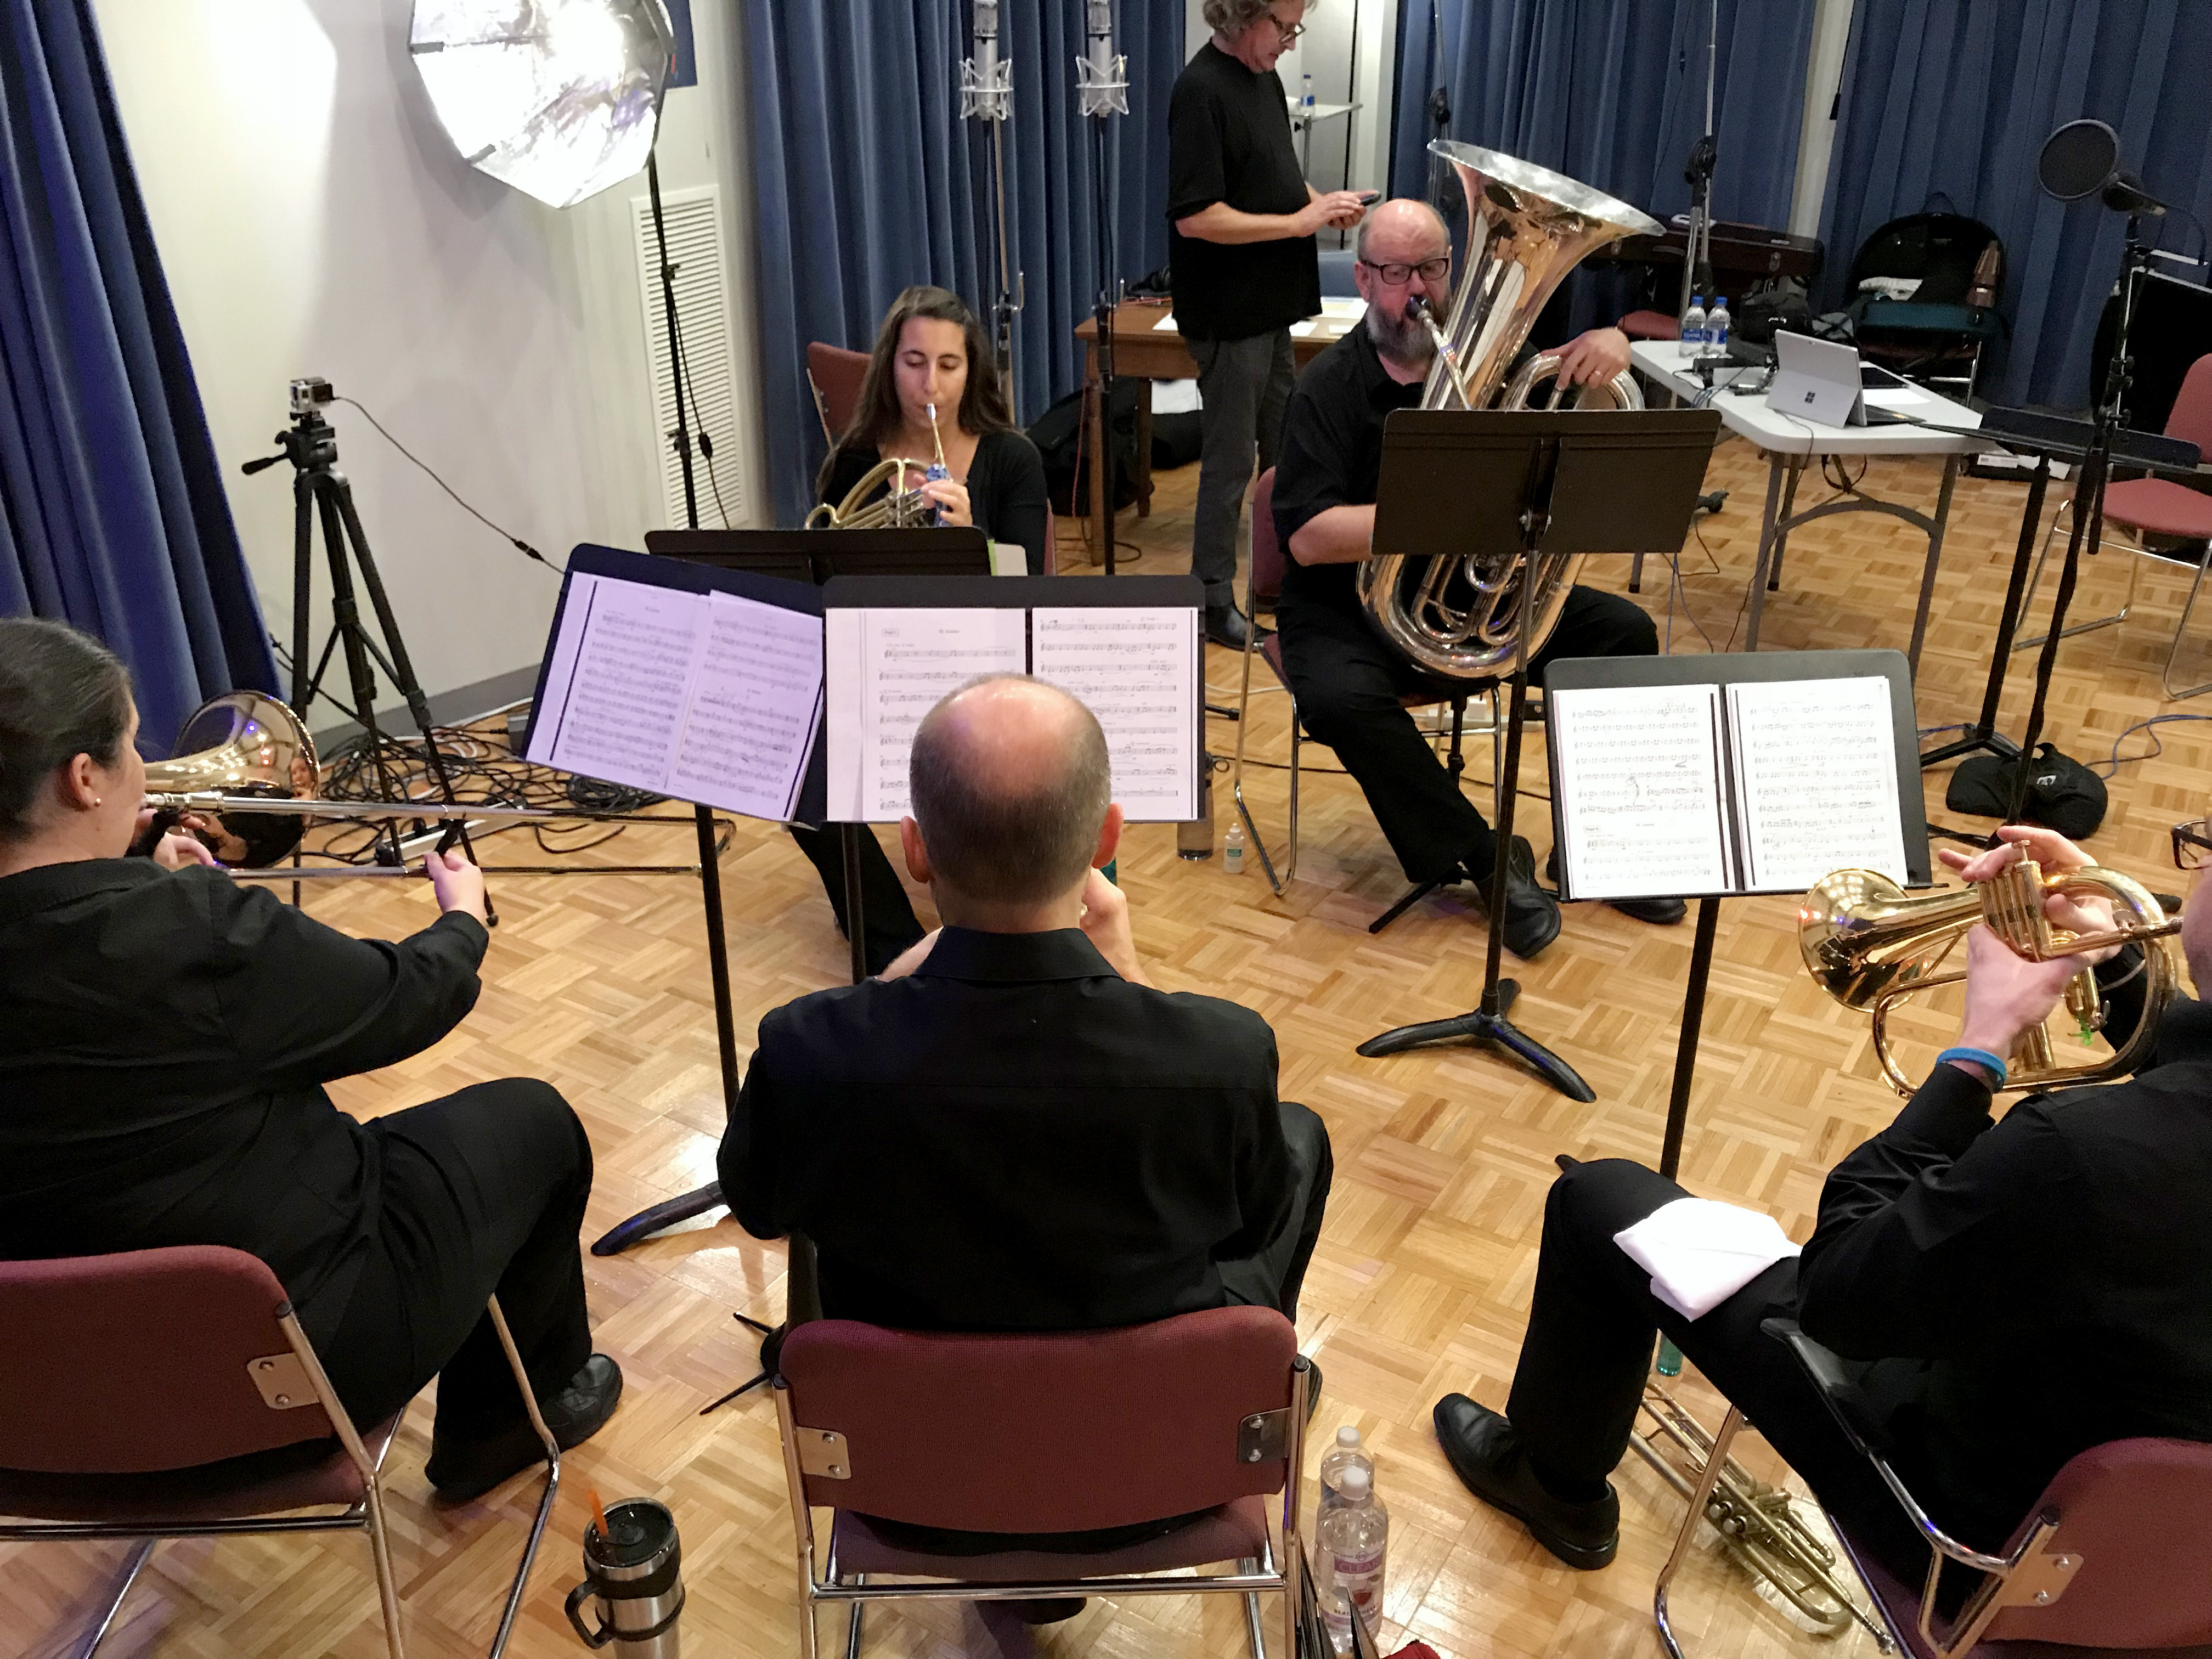 The Washburn University Brass Quintet performs a selection of music for the autumn season.